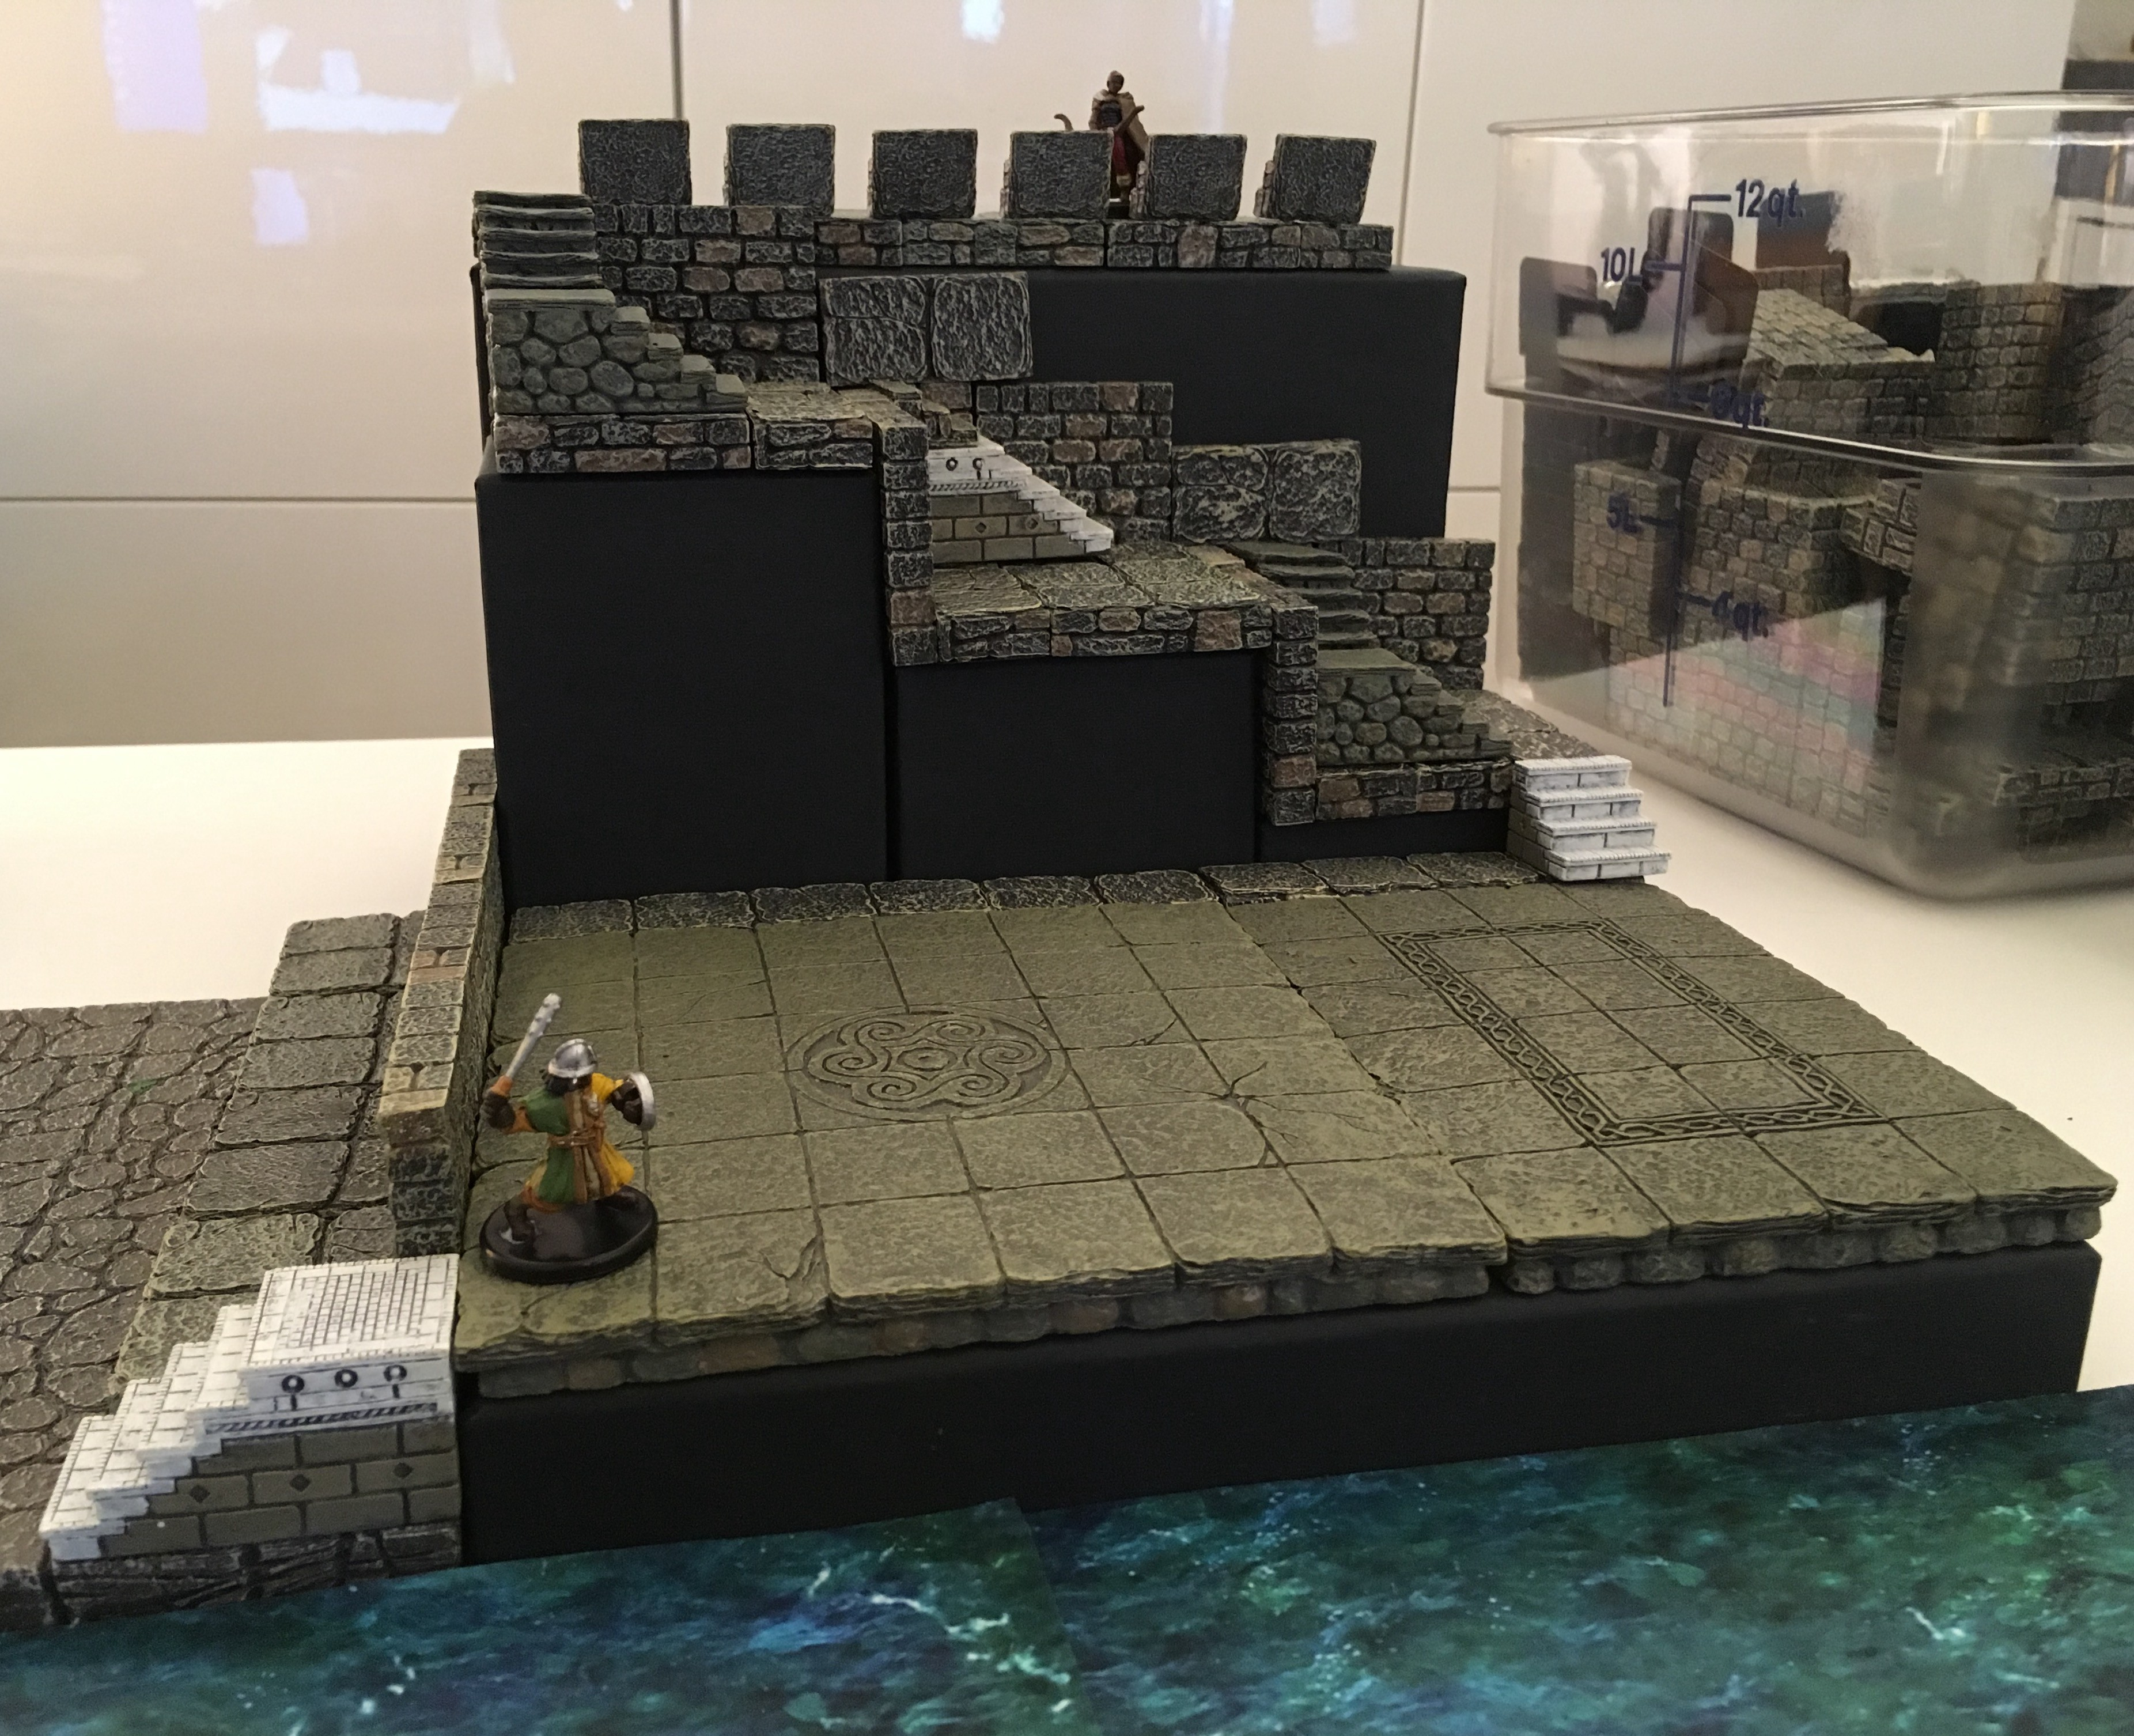 A miniature fighter advances across a raised courtyard, as 4 levels up an archer watches. Underneath it all: black boxes.